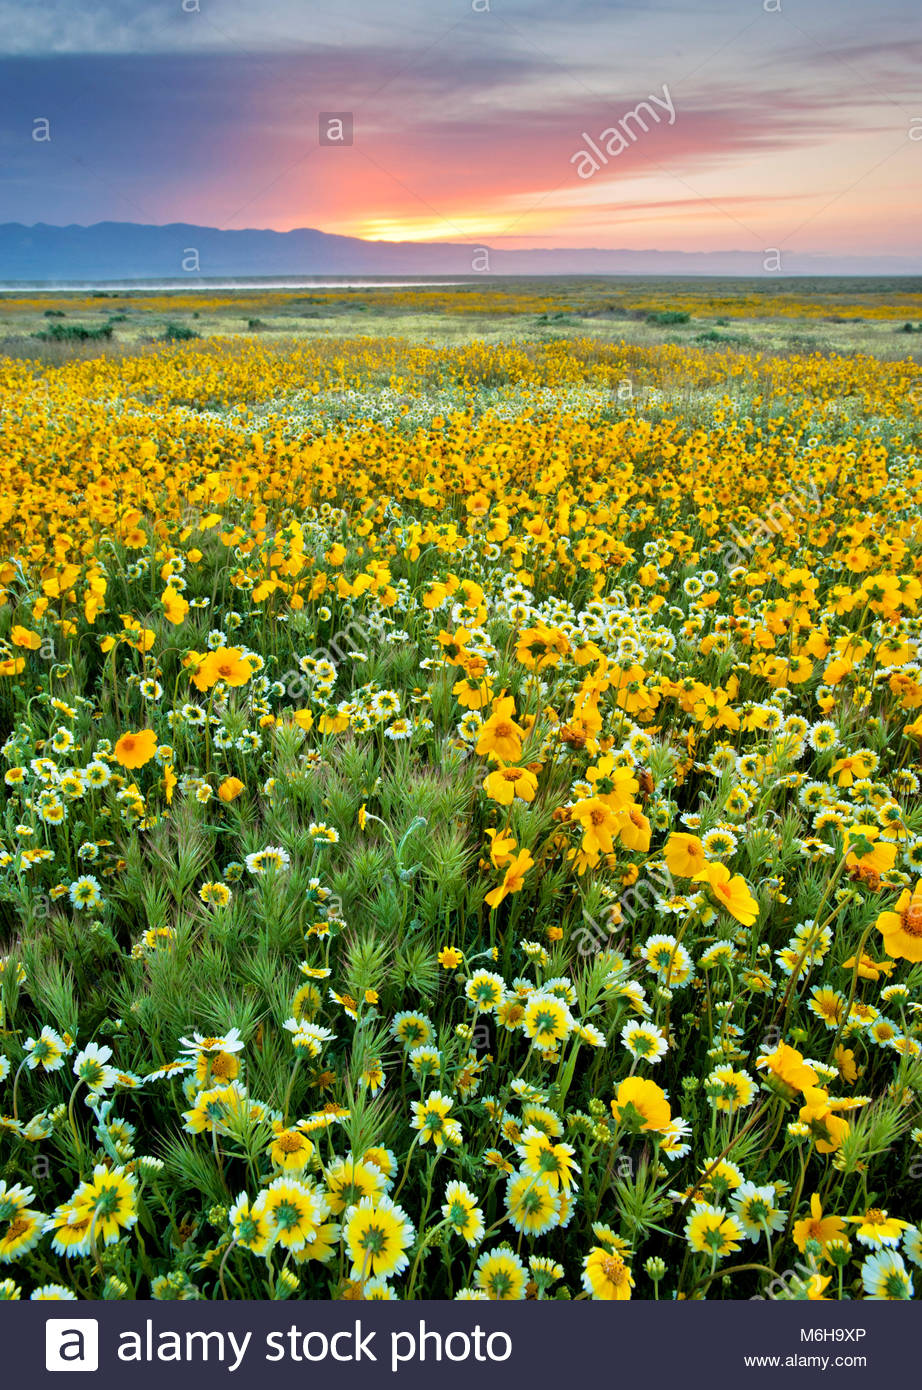 Tidy-tips, Coreopsis and Grasses at Sunrise, Carrizo Plain National Monument, California - Stock Image